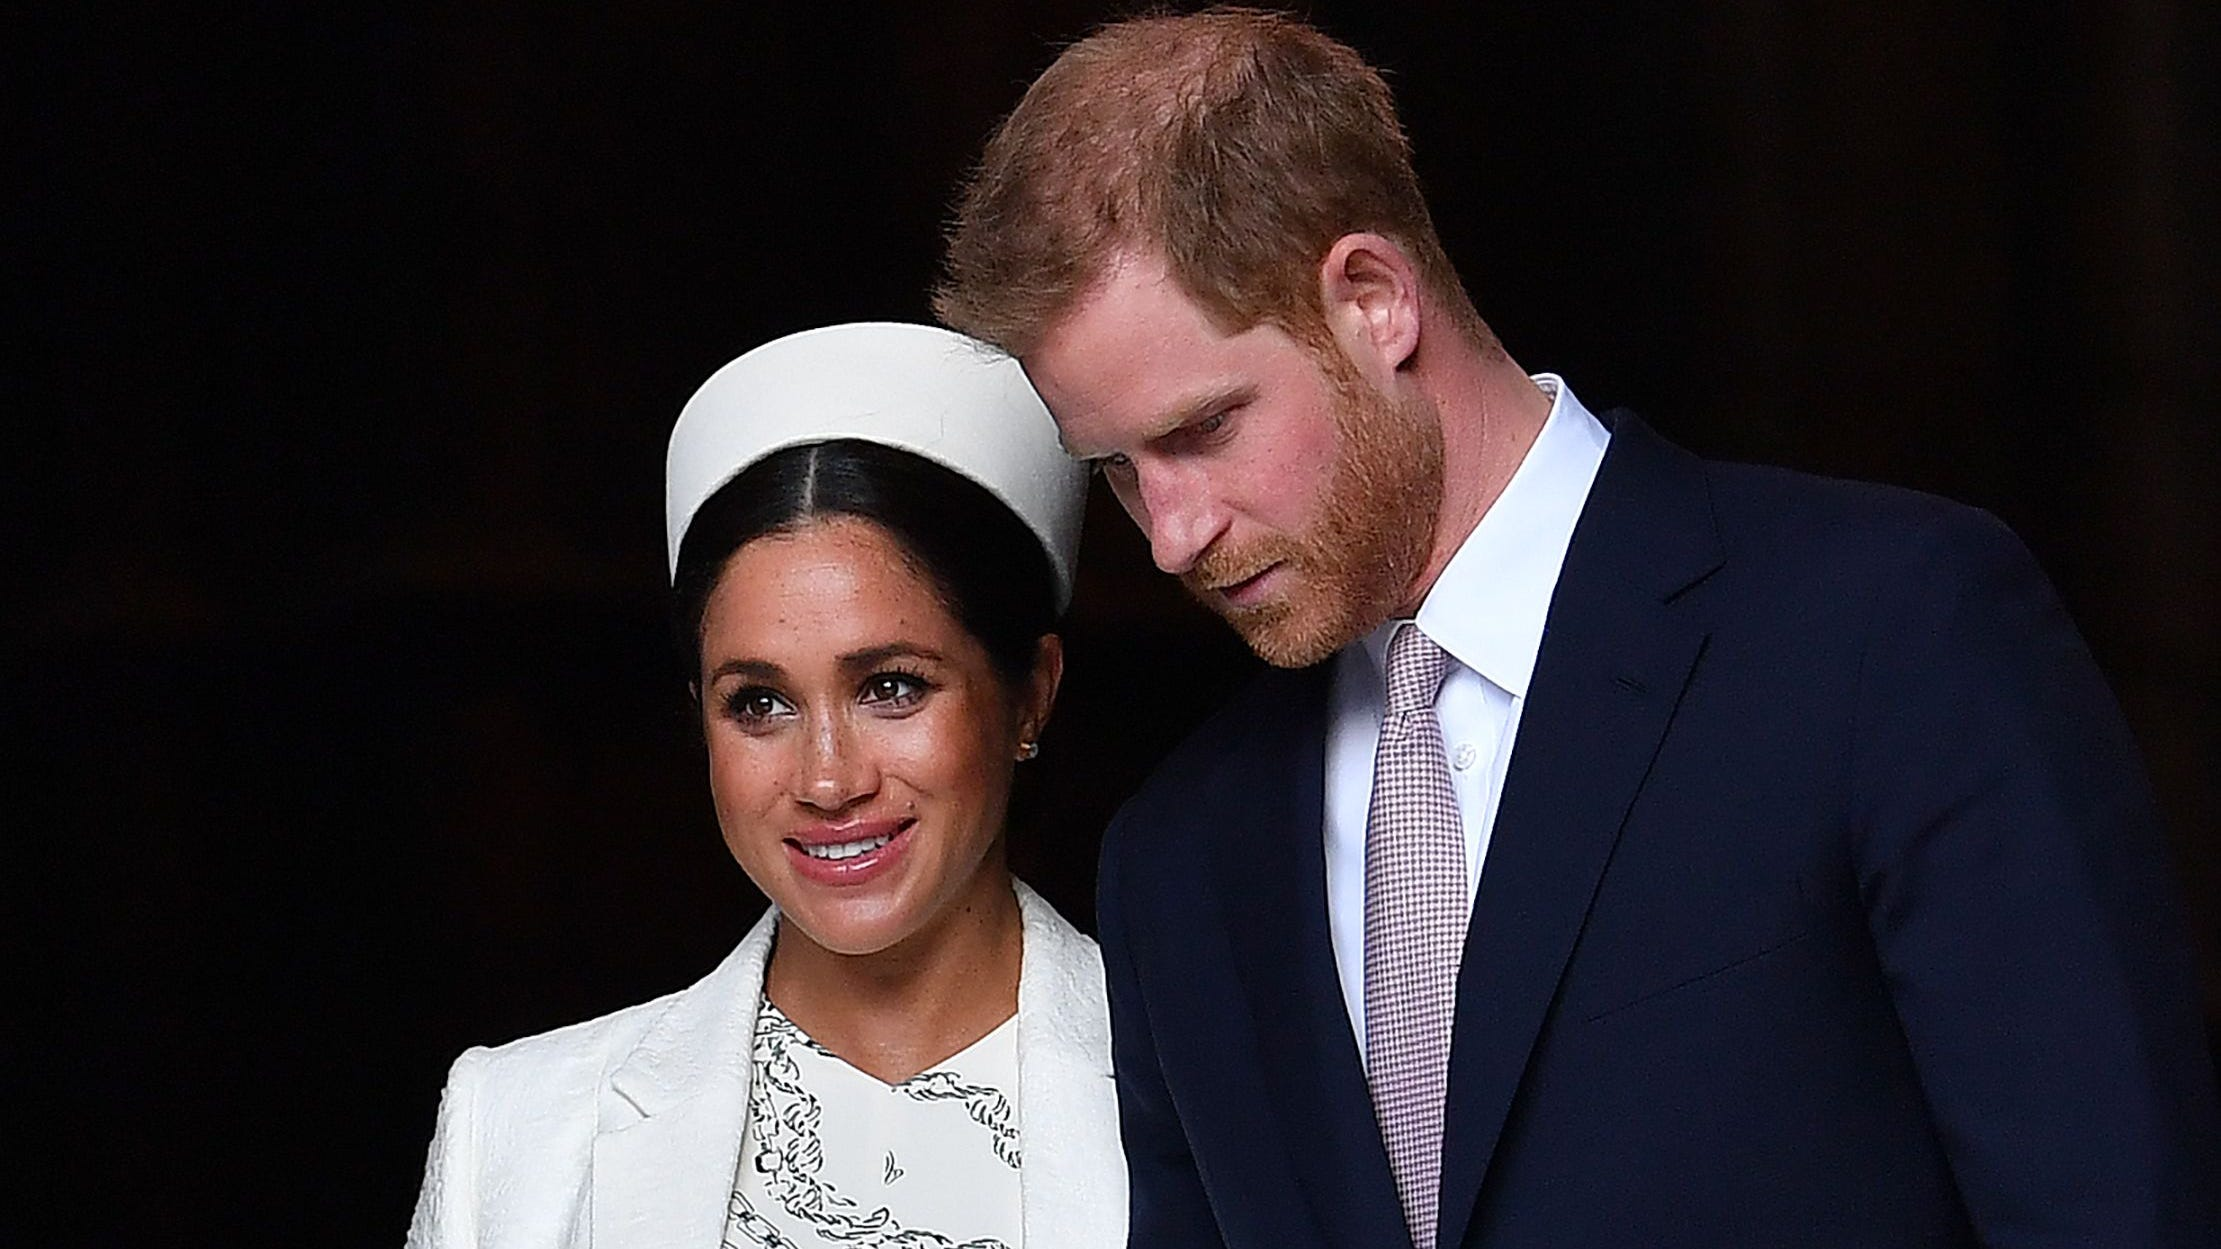 Prince Harry and Duchess Meghan of Sussex at a Commonwealth Day Service at Westminster Abbey on March 11, 2019.